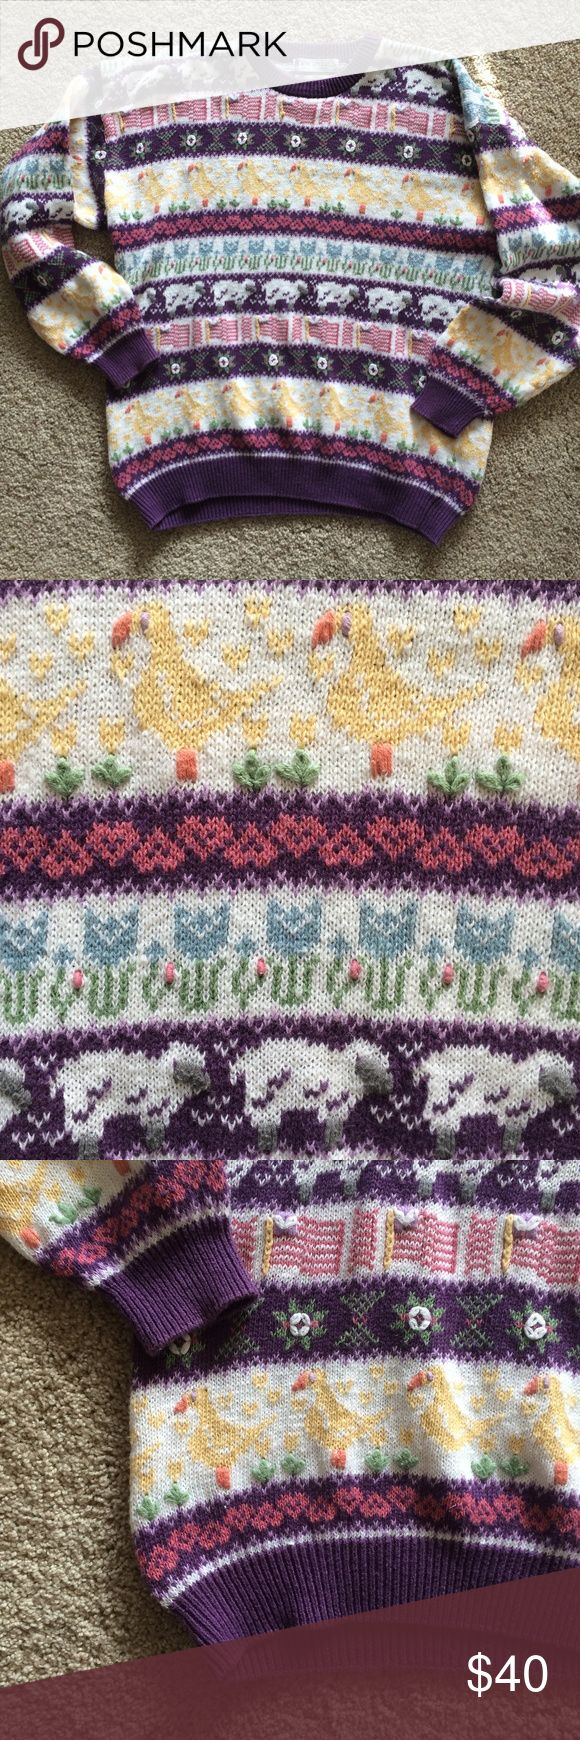 ✨RARE! vintage hand-embroidered animal sweater ✨ One-of-a-kind! And soooo cute! Perfect for spring. 80s vintage Northern Isle sweater. Hand-embroidered sheep, ducks, tulips, hearts and other patterns. Purple background with white stripes. Ramie/cotton blend - warm but still breathable. Oversized. Crew neck. Pullover. Hem that slightly curves up. From a smoke-free home. Please comment with any questions, or feel free to make an offer! Northern Isle Sweaters Crew & Scoop Necks